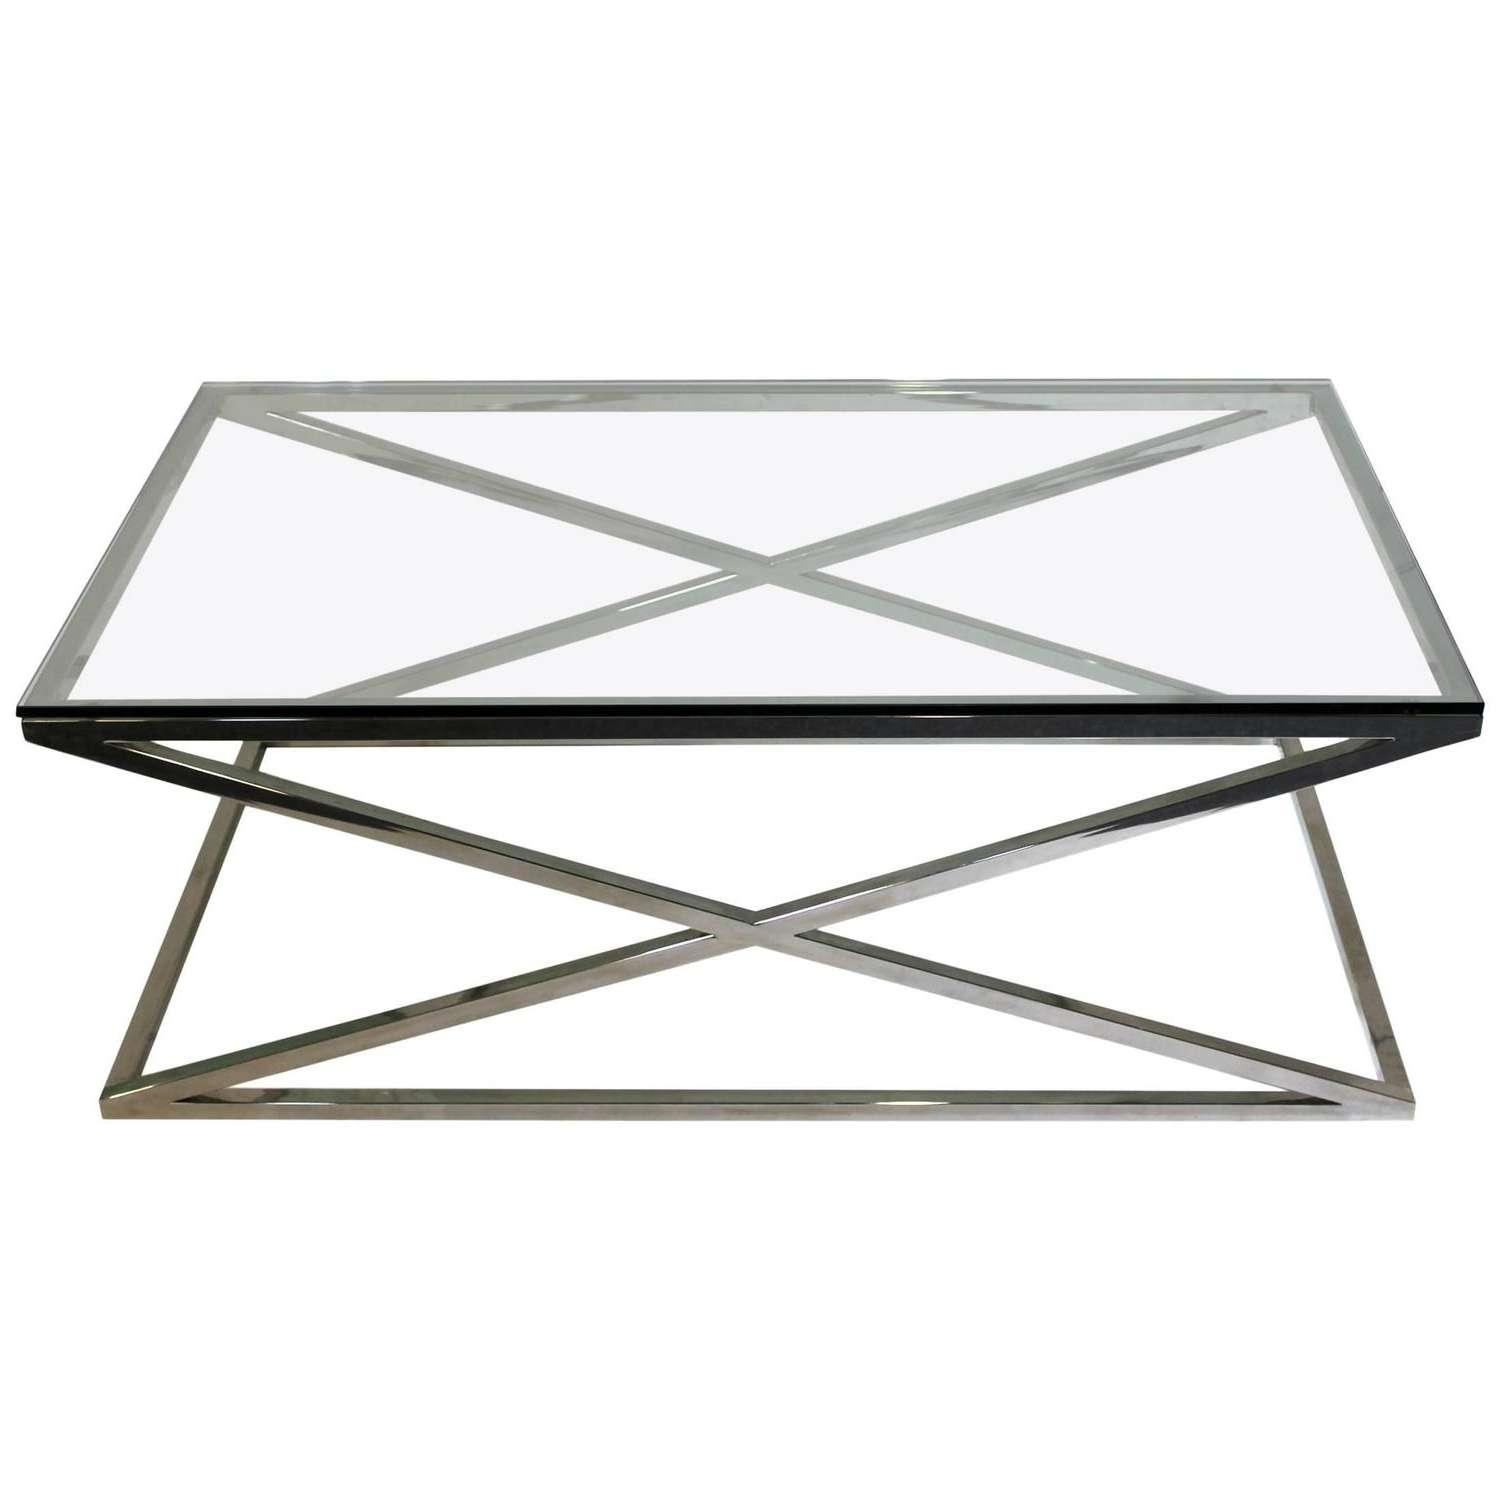 Mid Century Modern Rectangular Glass Coffee Table Chrome X Base At For Latest Rectangle Glass Chrome Coffee Tables (View 10 of 20)